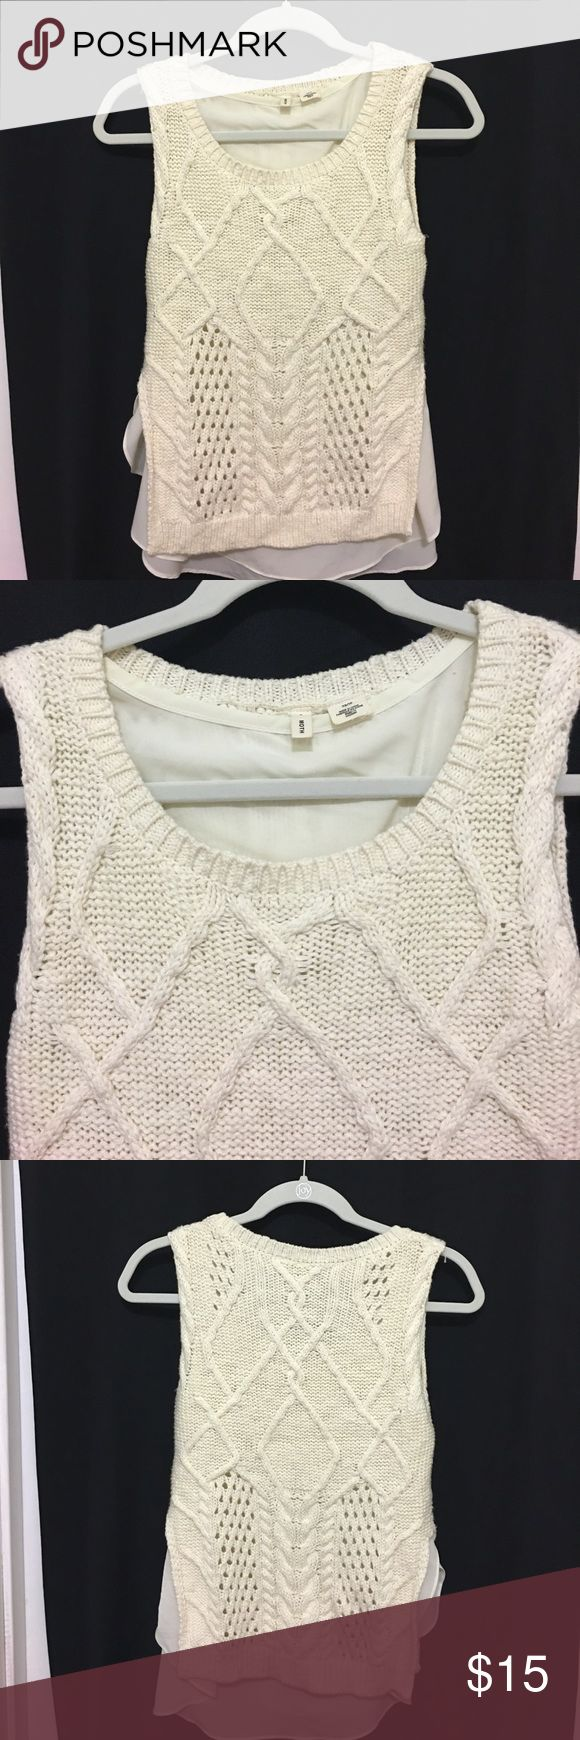 Gorgeous MOTH Anthropologie Brand Sweater Gorgeous MOTH Anthropologie brand sweater. Cream Colored. Size X-Small. Sleeveless. Shell 100% Cotton/Lining 91% Polyester/9% Spandex. Measures approximately 14 inches armpit to armpit. In good preowned condition. Please ask all questions prior to making an offer or purchase. Thanks for looking! MOTH Sweaters